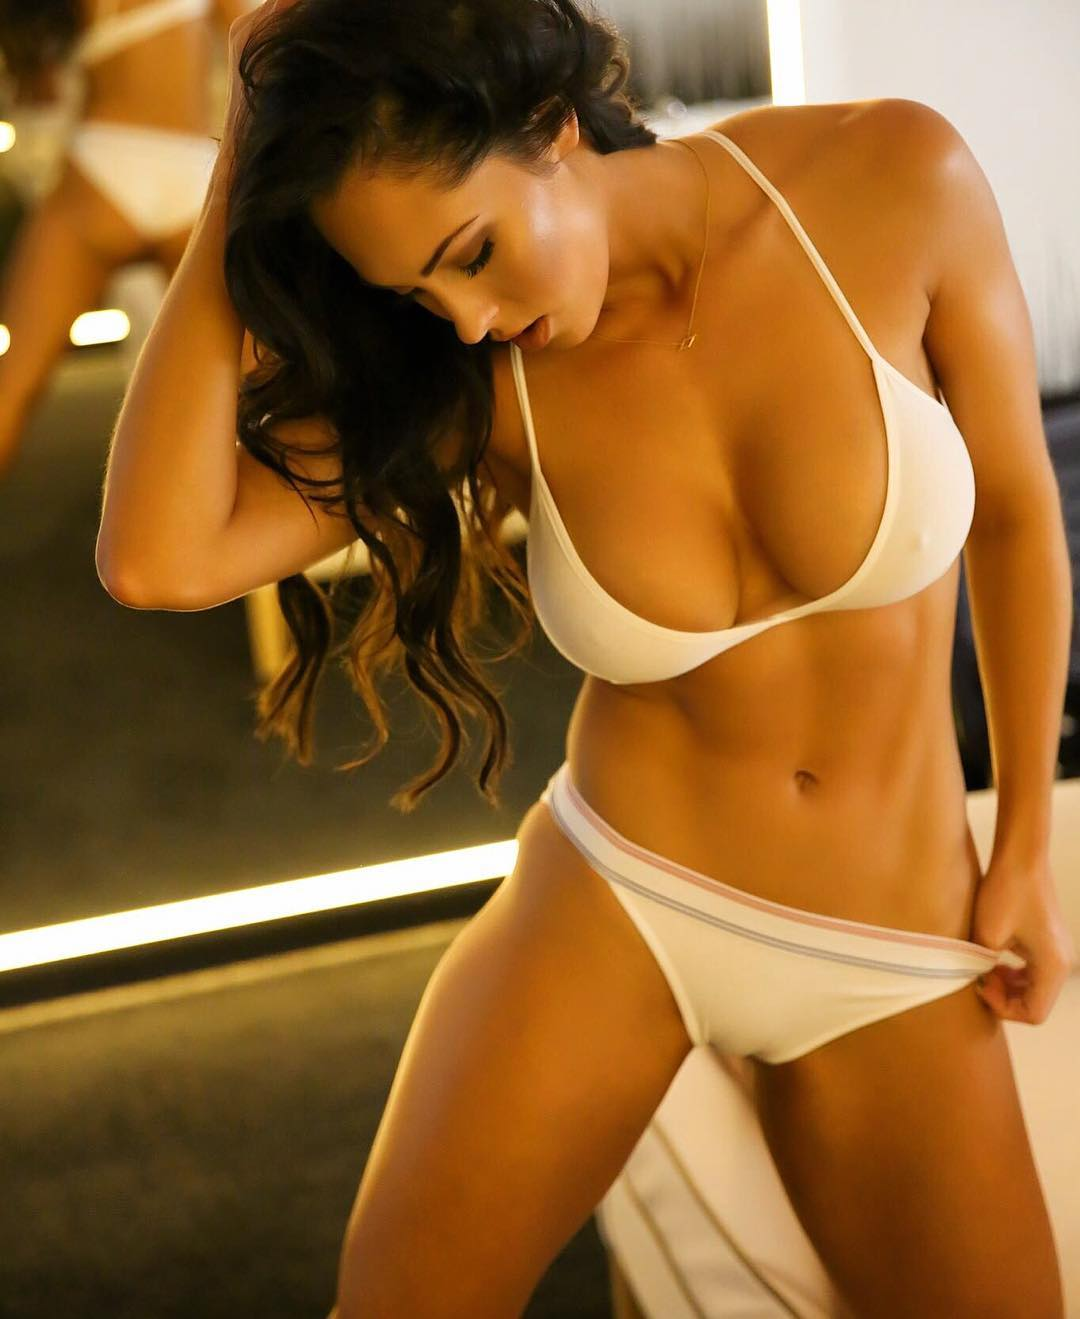 hope beel hot